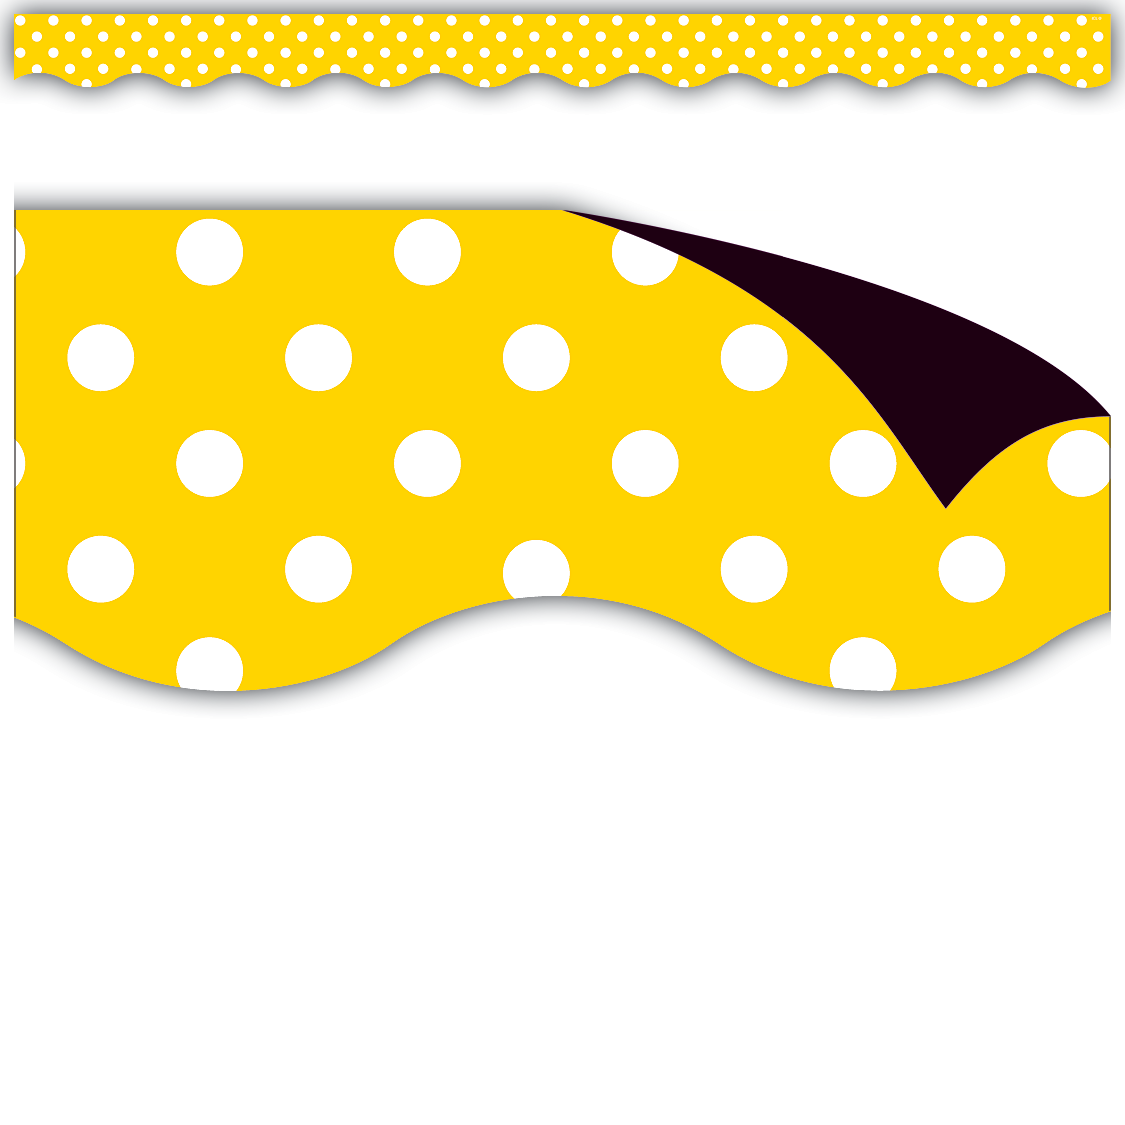 Yellow Polka Dots Magnetic Borders - Decorate your whiteboard in a snap with durable magnetic decor! Add flair to other metal surface such as doors, desks, shelving, and bins. Cuts easily with scissors to make your own labels or games pieces. Includes 12 pieces per pack.